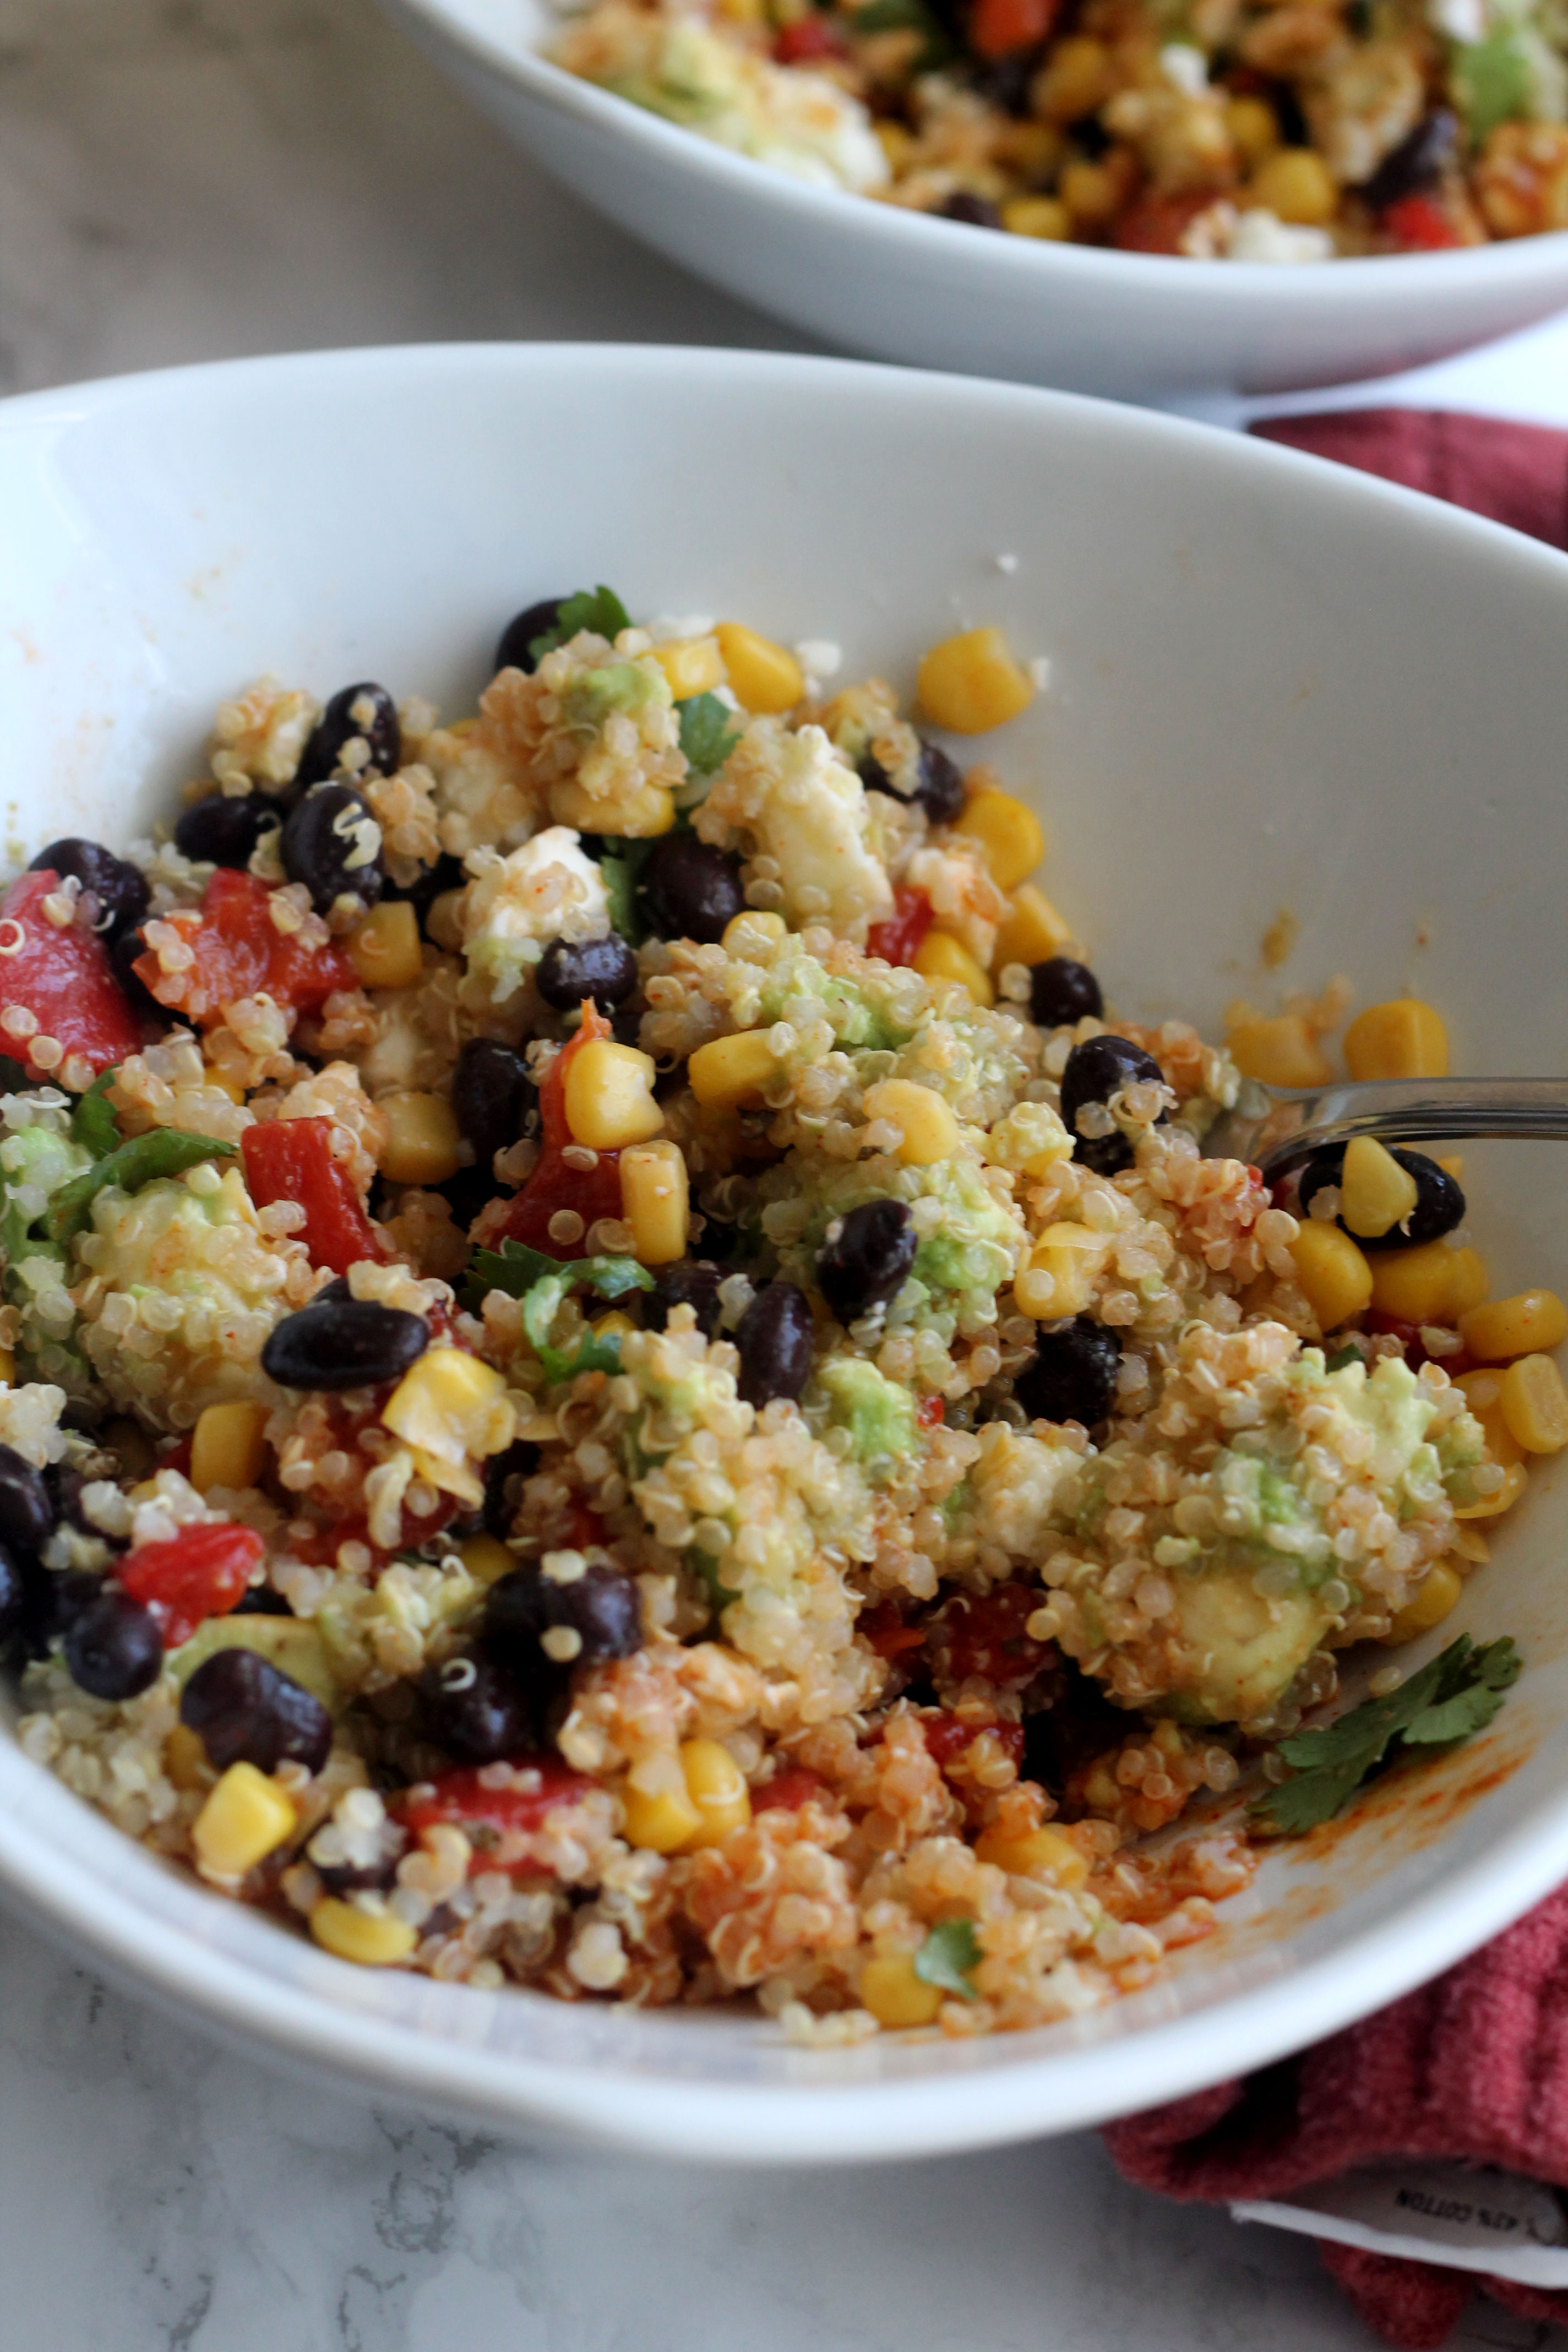 Southwestern Quinoa Bowl - Easy to make and full of flavor!